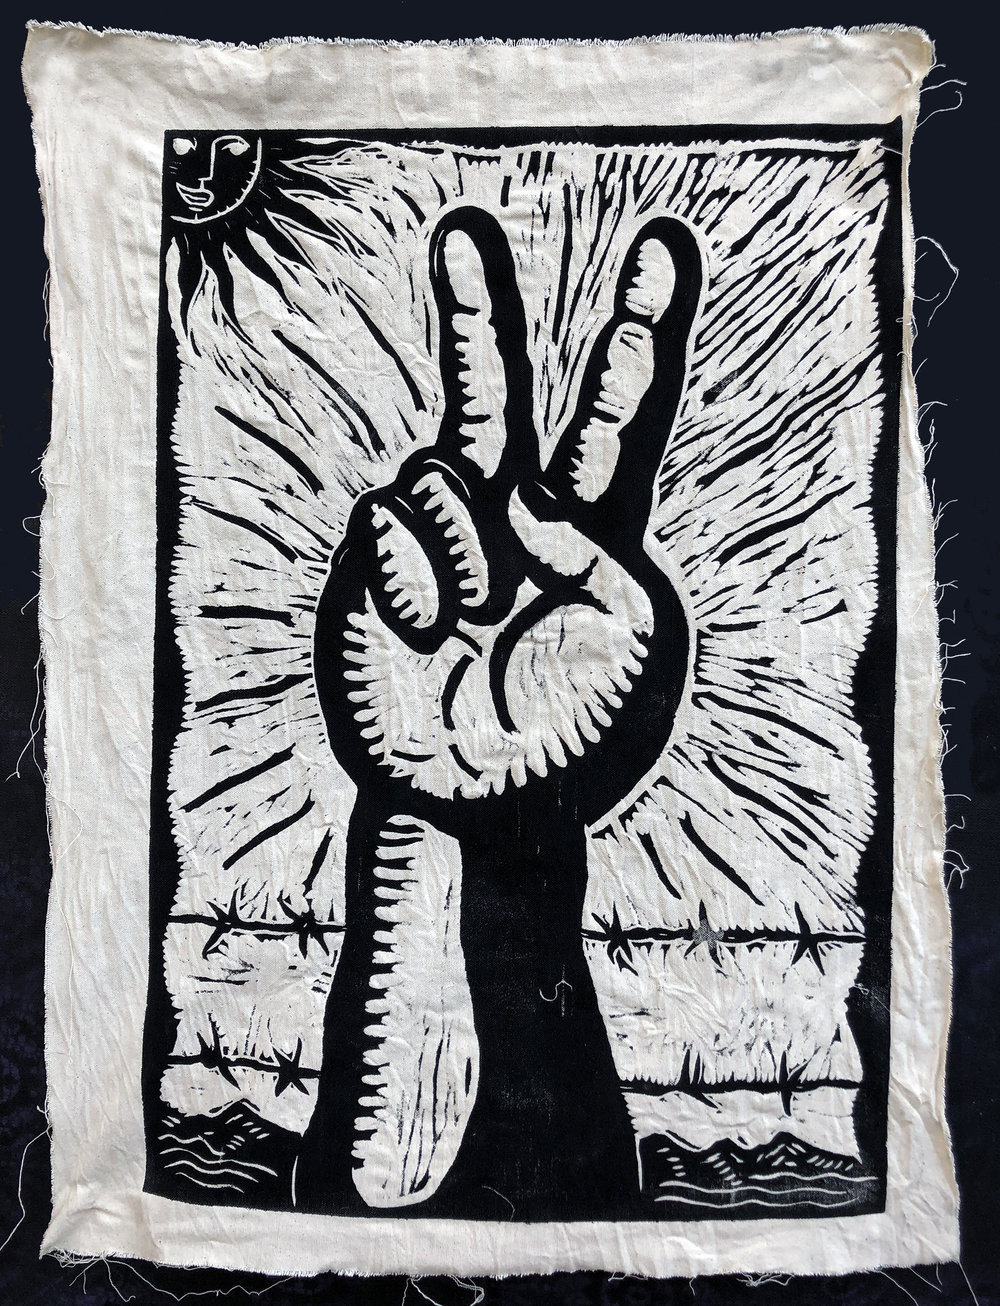 "Sending good vibes is a simple, yet powerful gesture. It's a start. The peace sign sends a message of peace. The hand gesture also indicates two. Two what? There are two of us. We are stronger together.  Title: Vibra Buena  Medium: Oil Monoprint on canvas  Size: 20"" x 28""  Year of Creation: 2018  Price $800  For sales inquiries, please contact Etherton Gallery  www.ethertongallery.com"